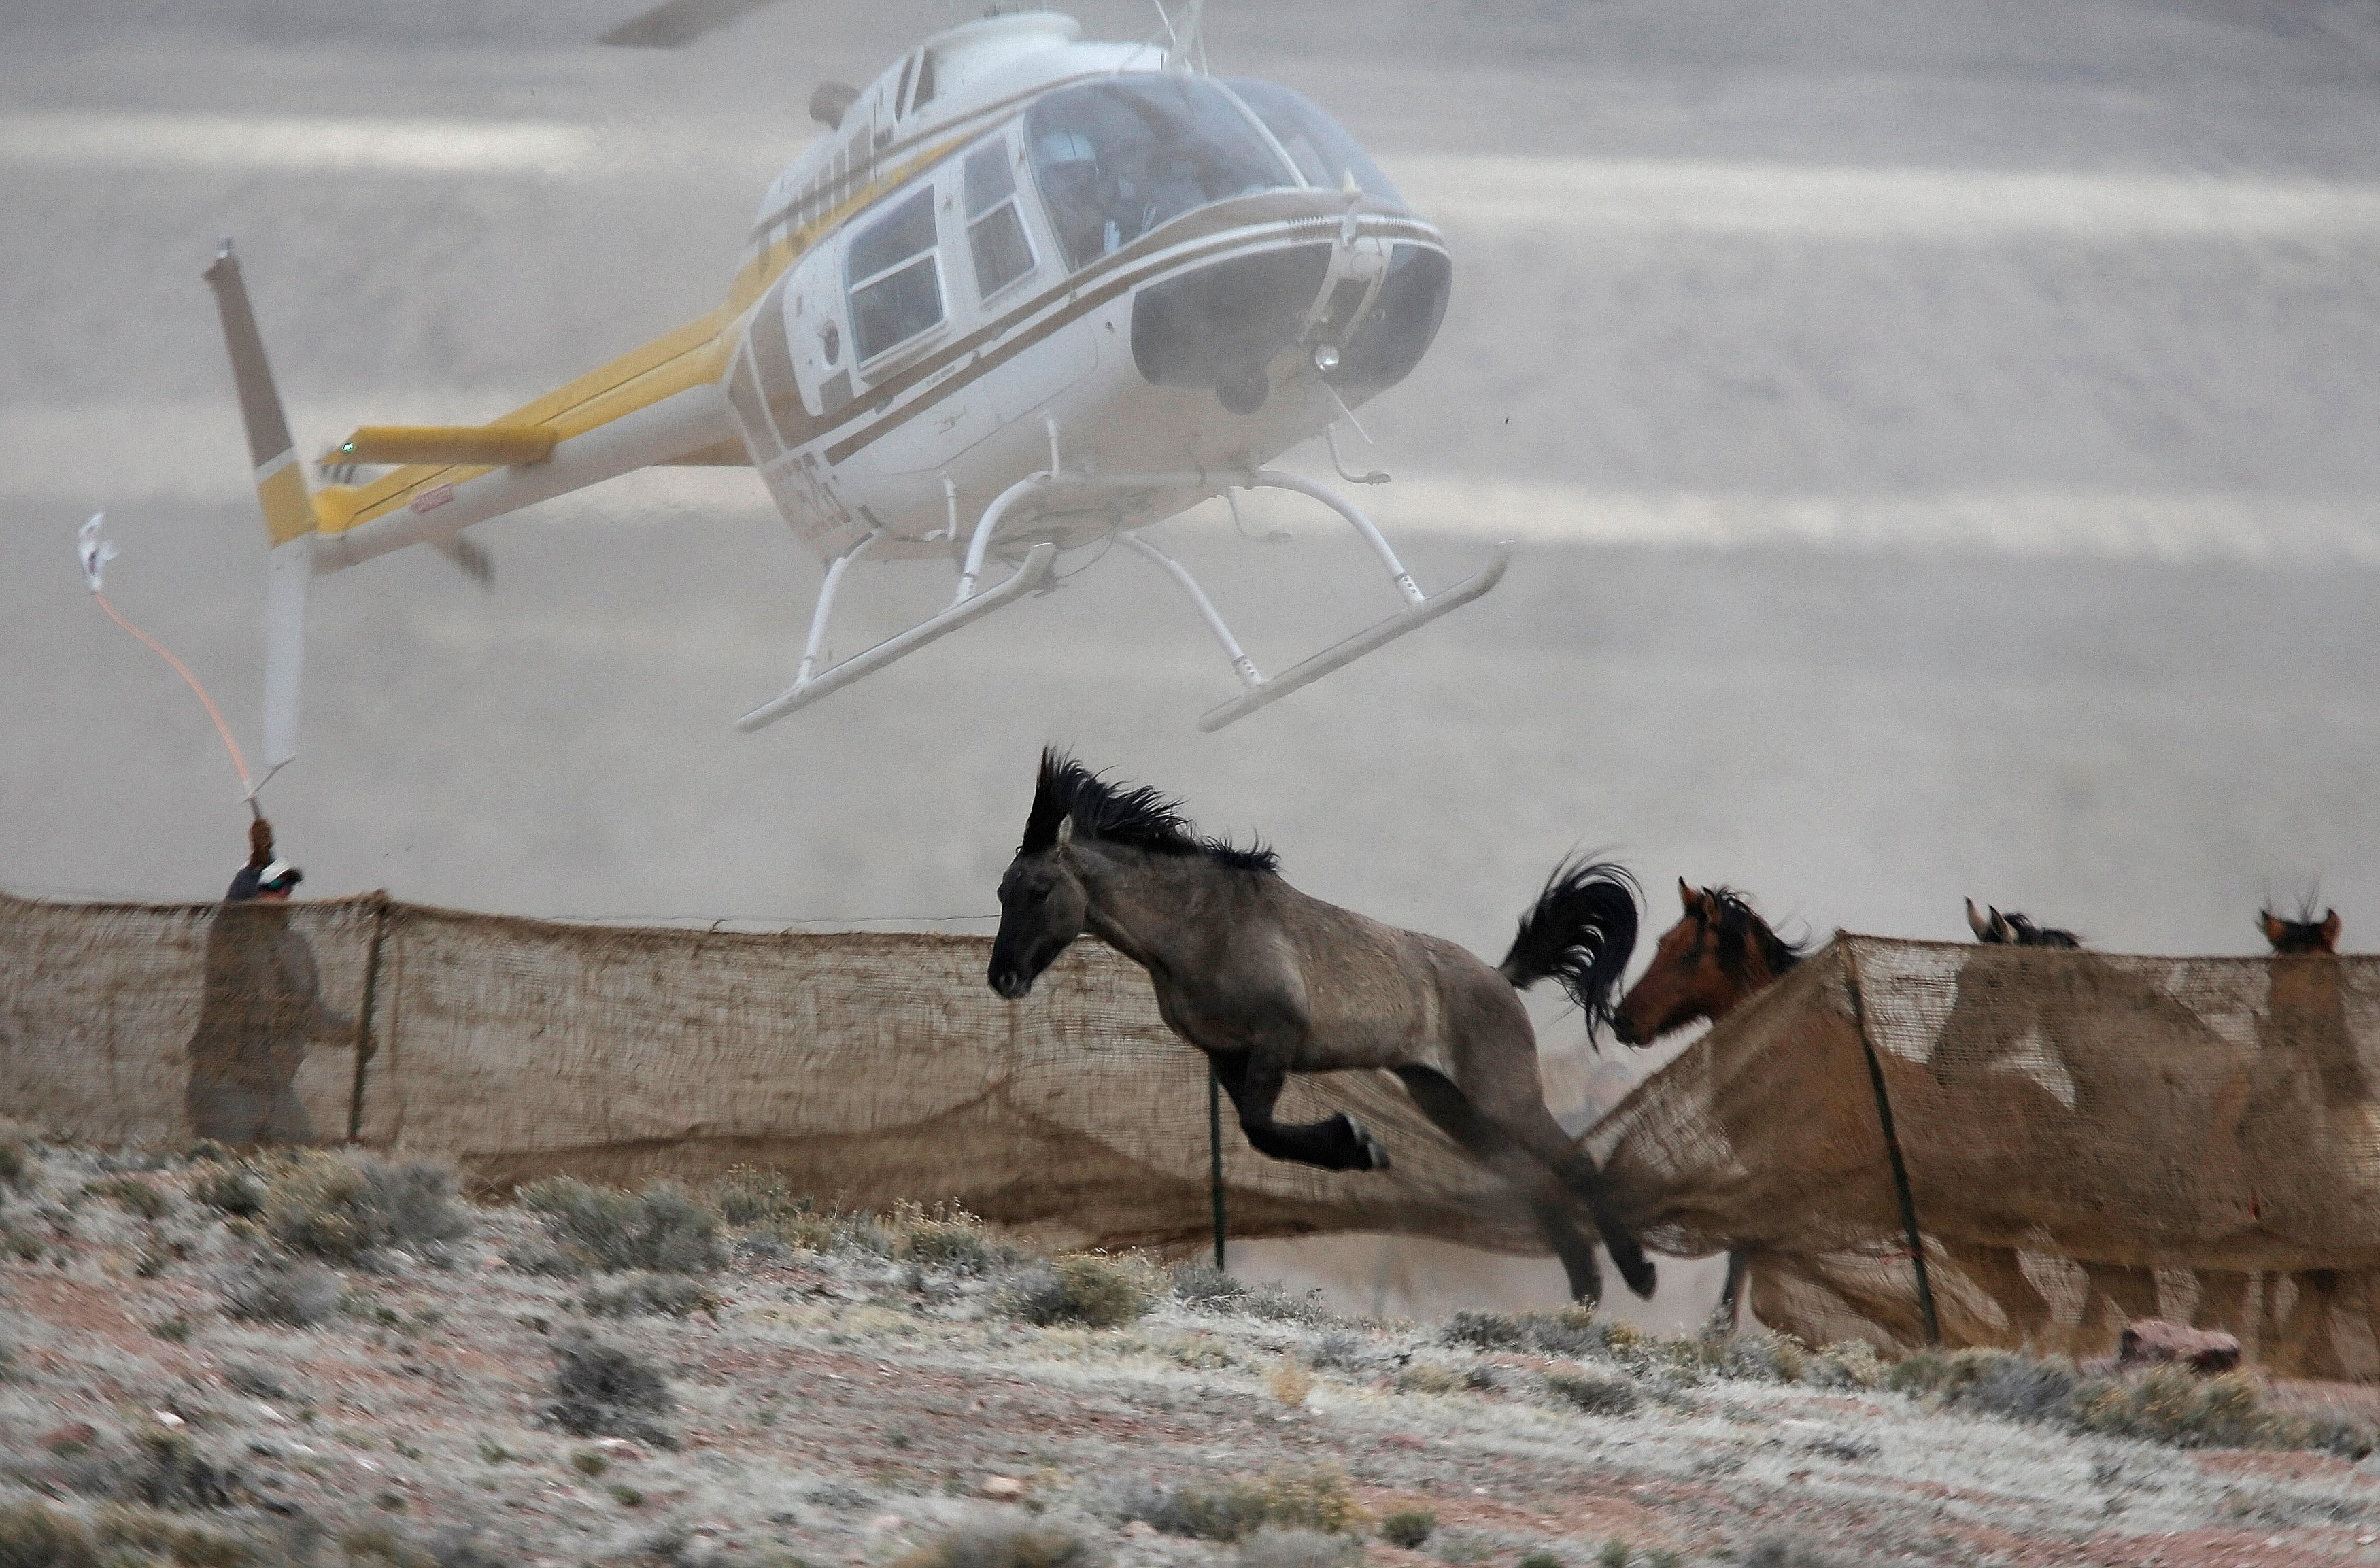 Several wild horses escape as a helicopter is used by the Bureau of Land Management to gather wild horses into a trap along Highway 21 near Garrison, Utah,  on Feb. 26, 2015.